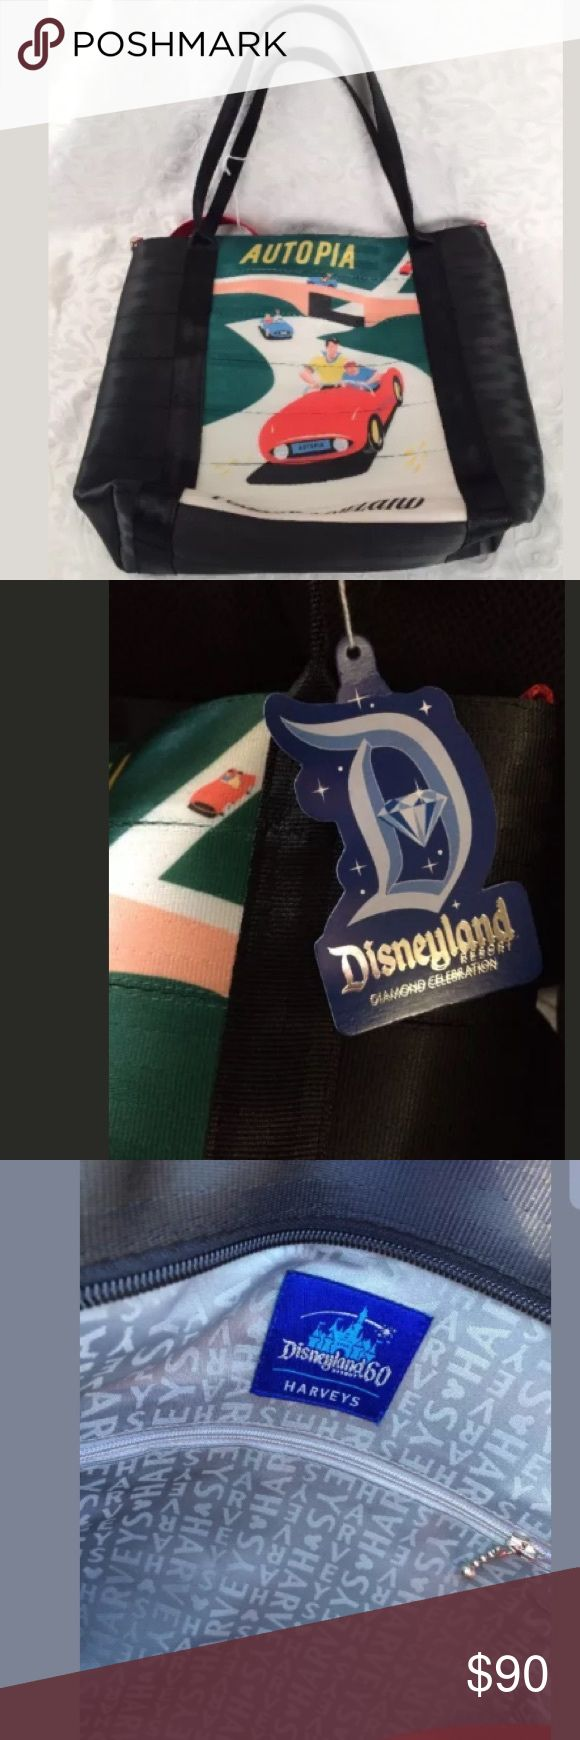 """Harvey's D60 Disneyland Tomorrowland Seatbelt Tote New with tags, Disneylands 60th anniversary """"D60"""" Harvey's Special Edition Tomorrowland Purse in this series. Disney Bags Totes"""